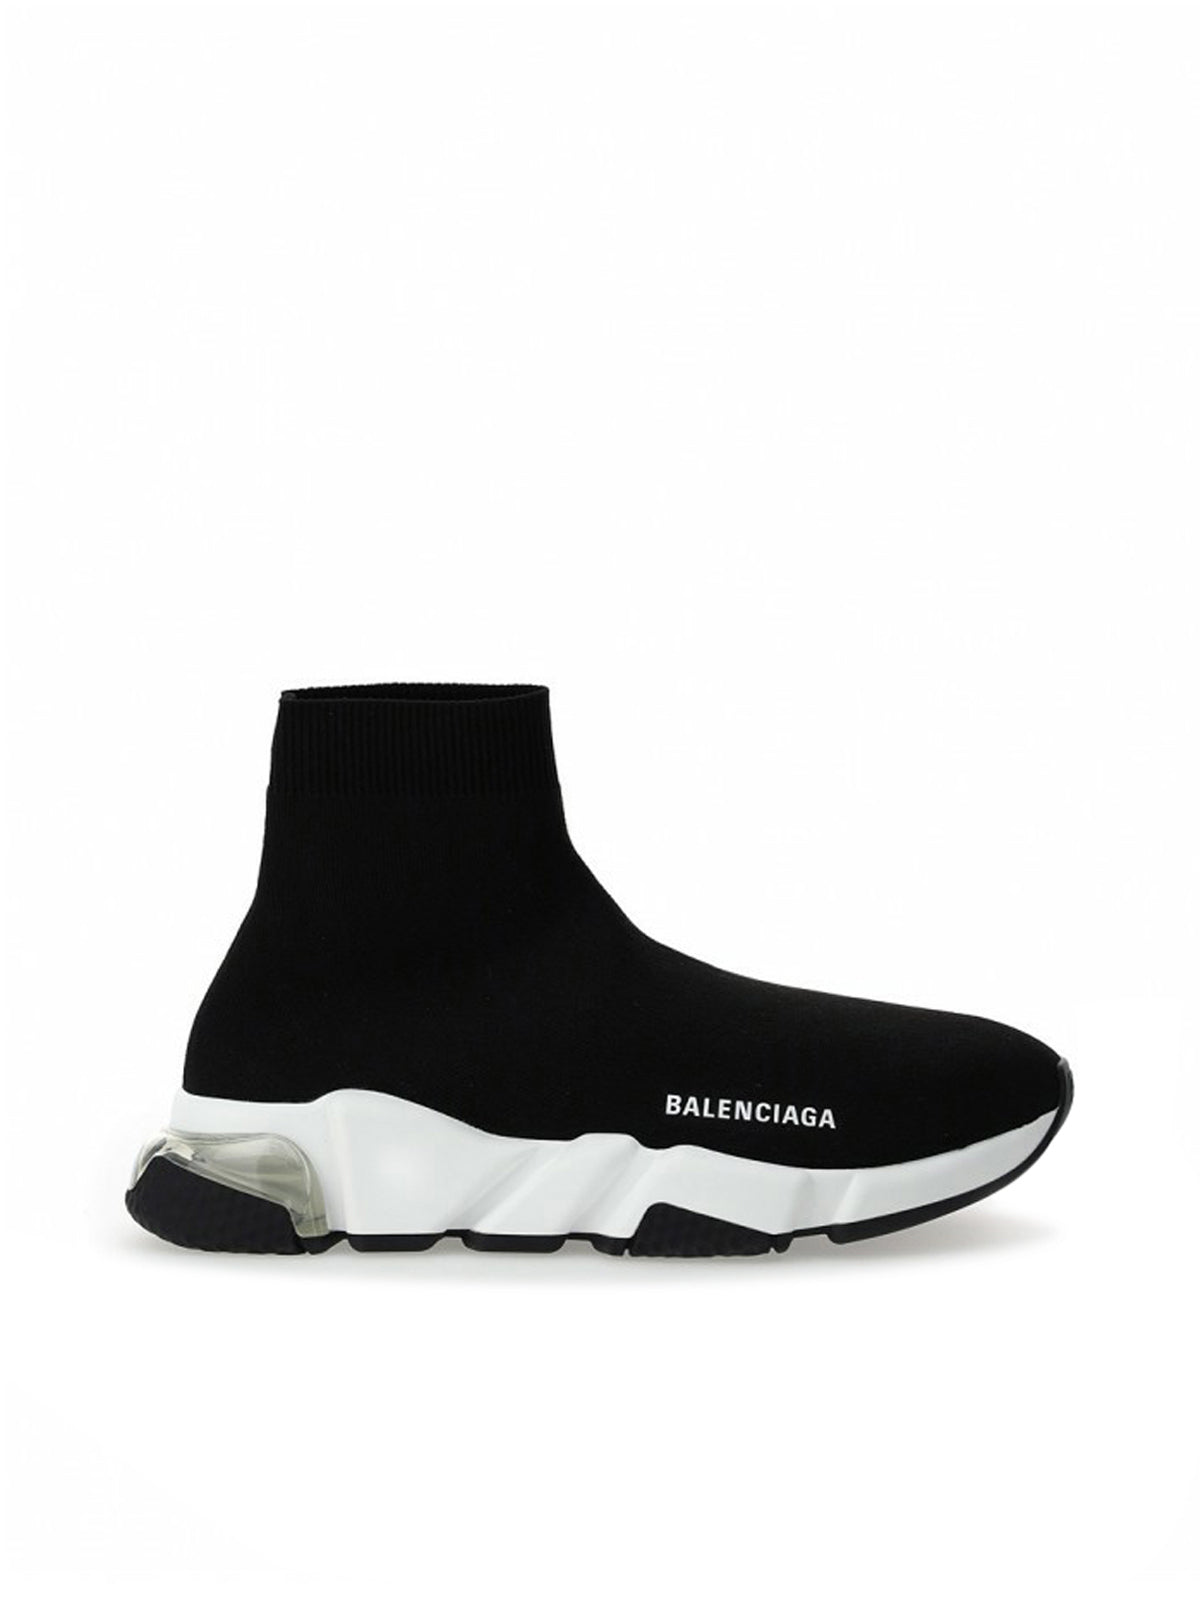 Balenciaga Speed Black sneakers